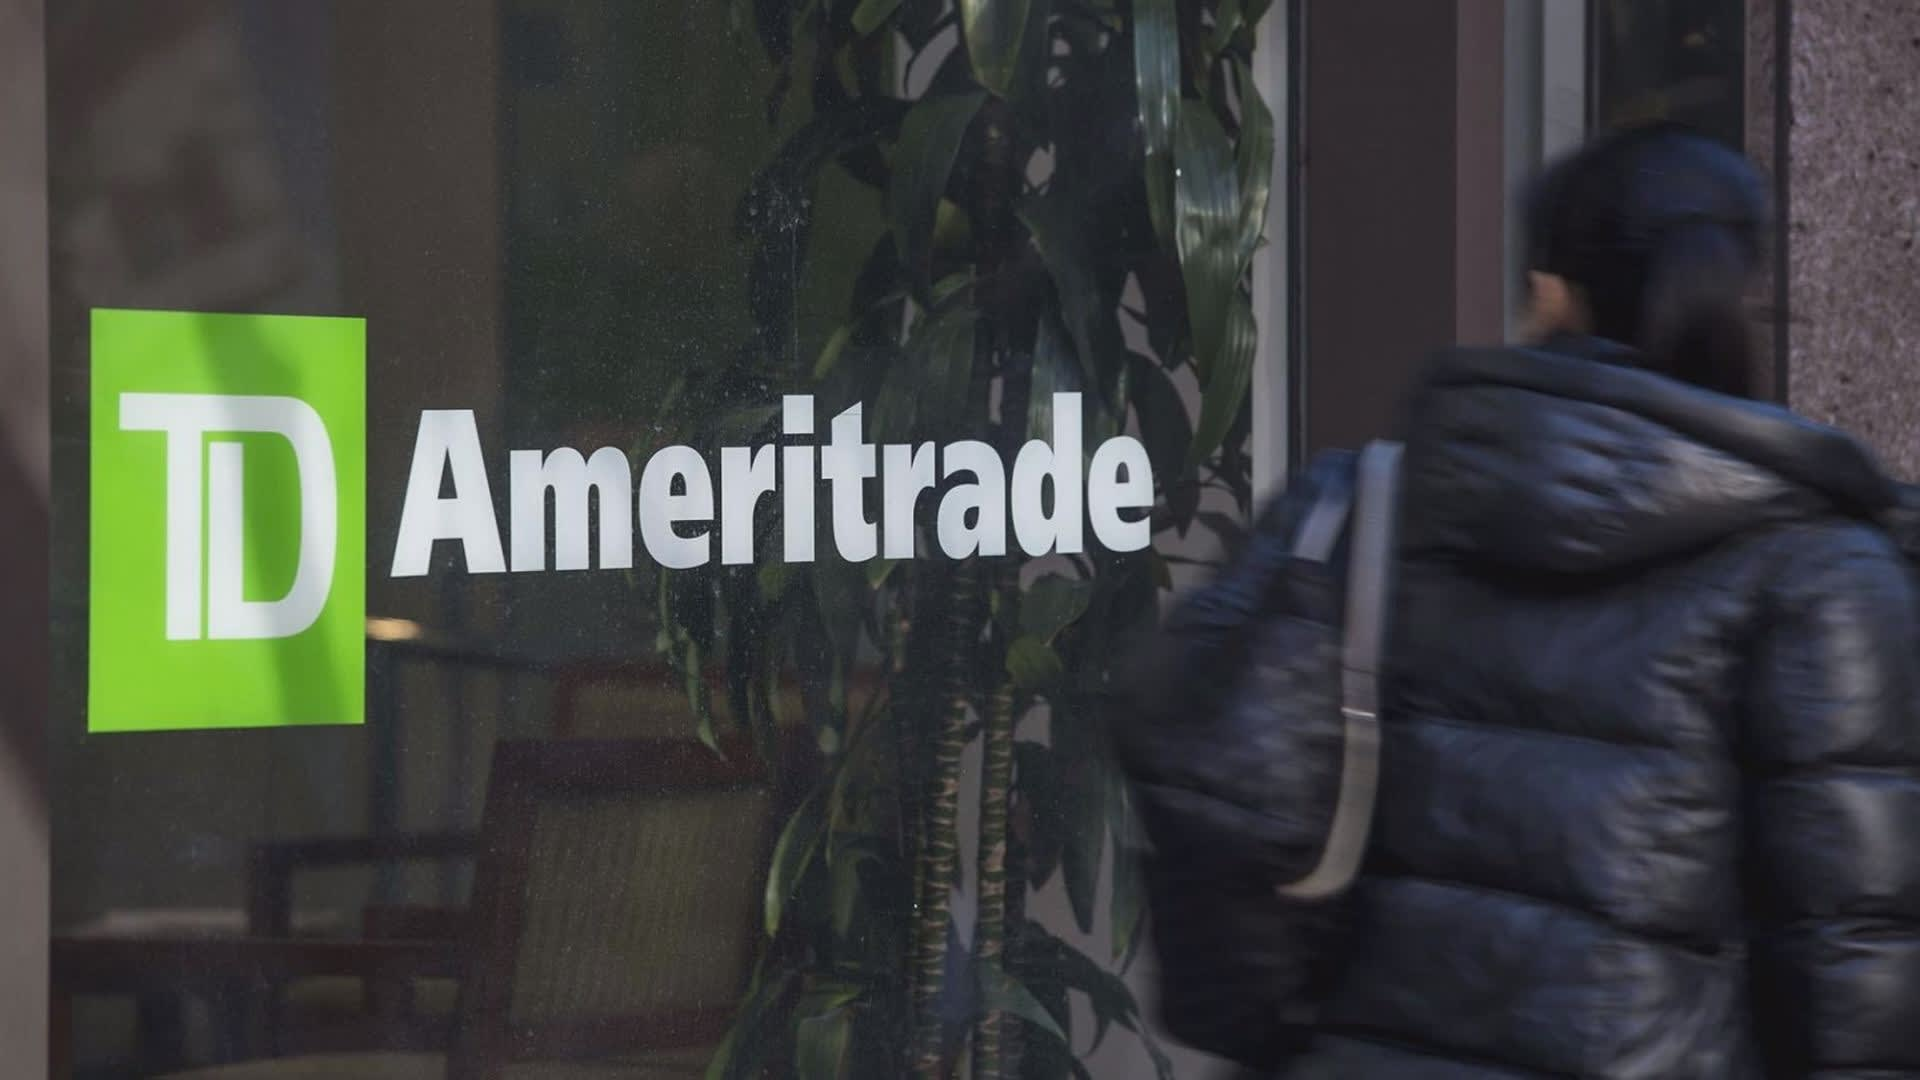 Investors Can Trade The Stock Market 24 Hrs A Day With Td Ameritrade